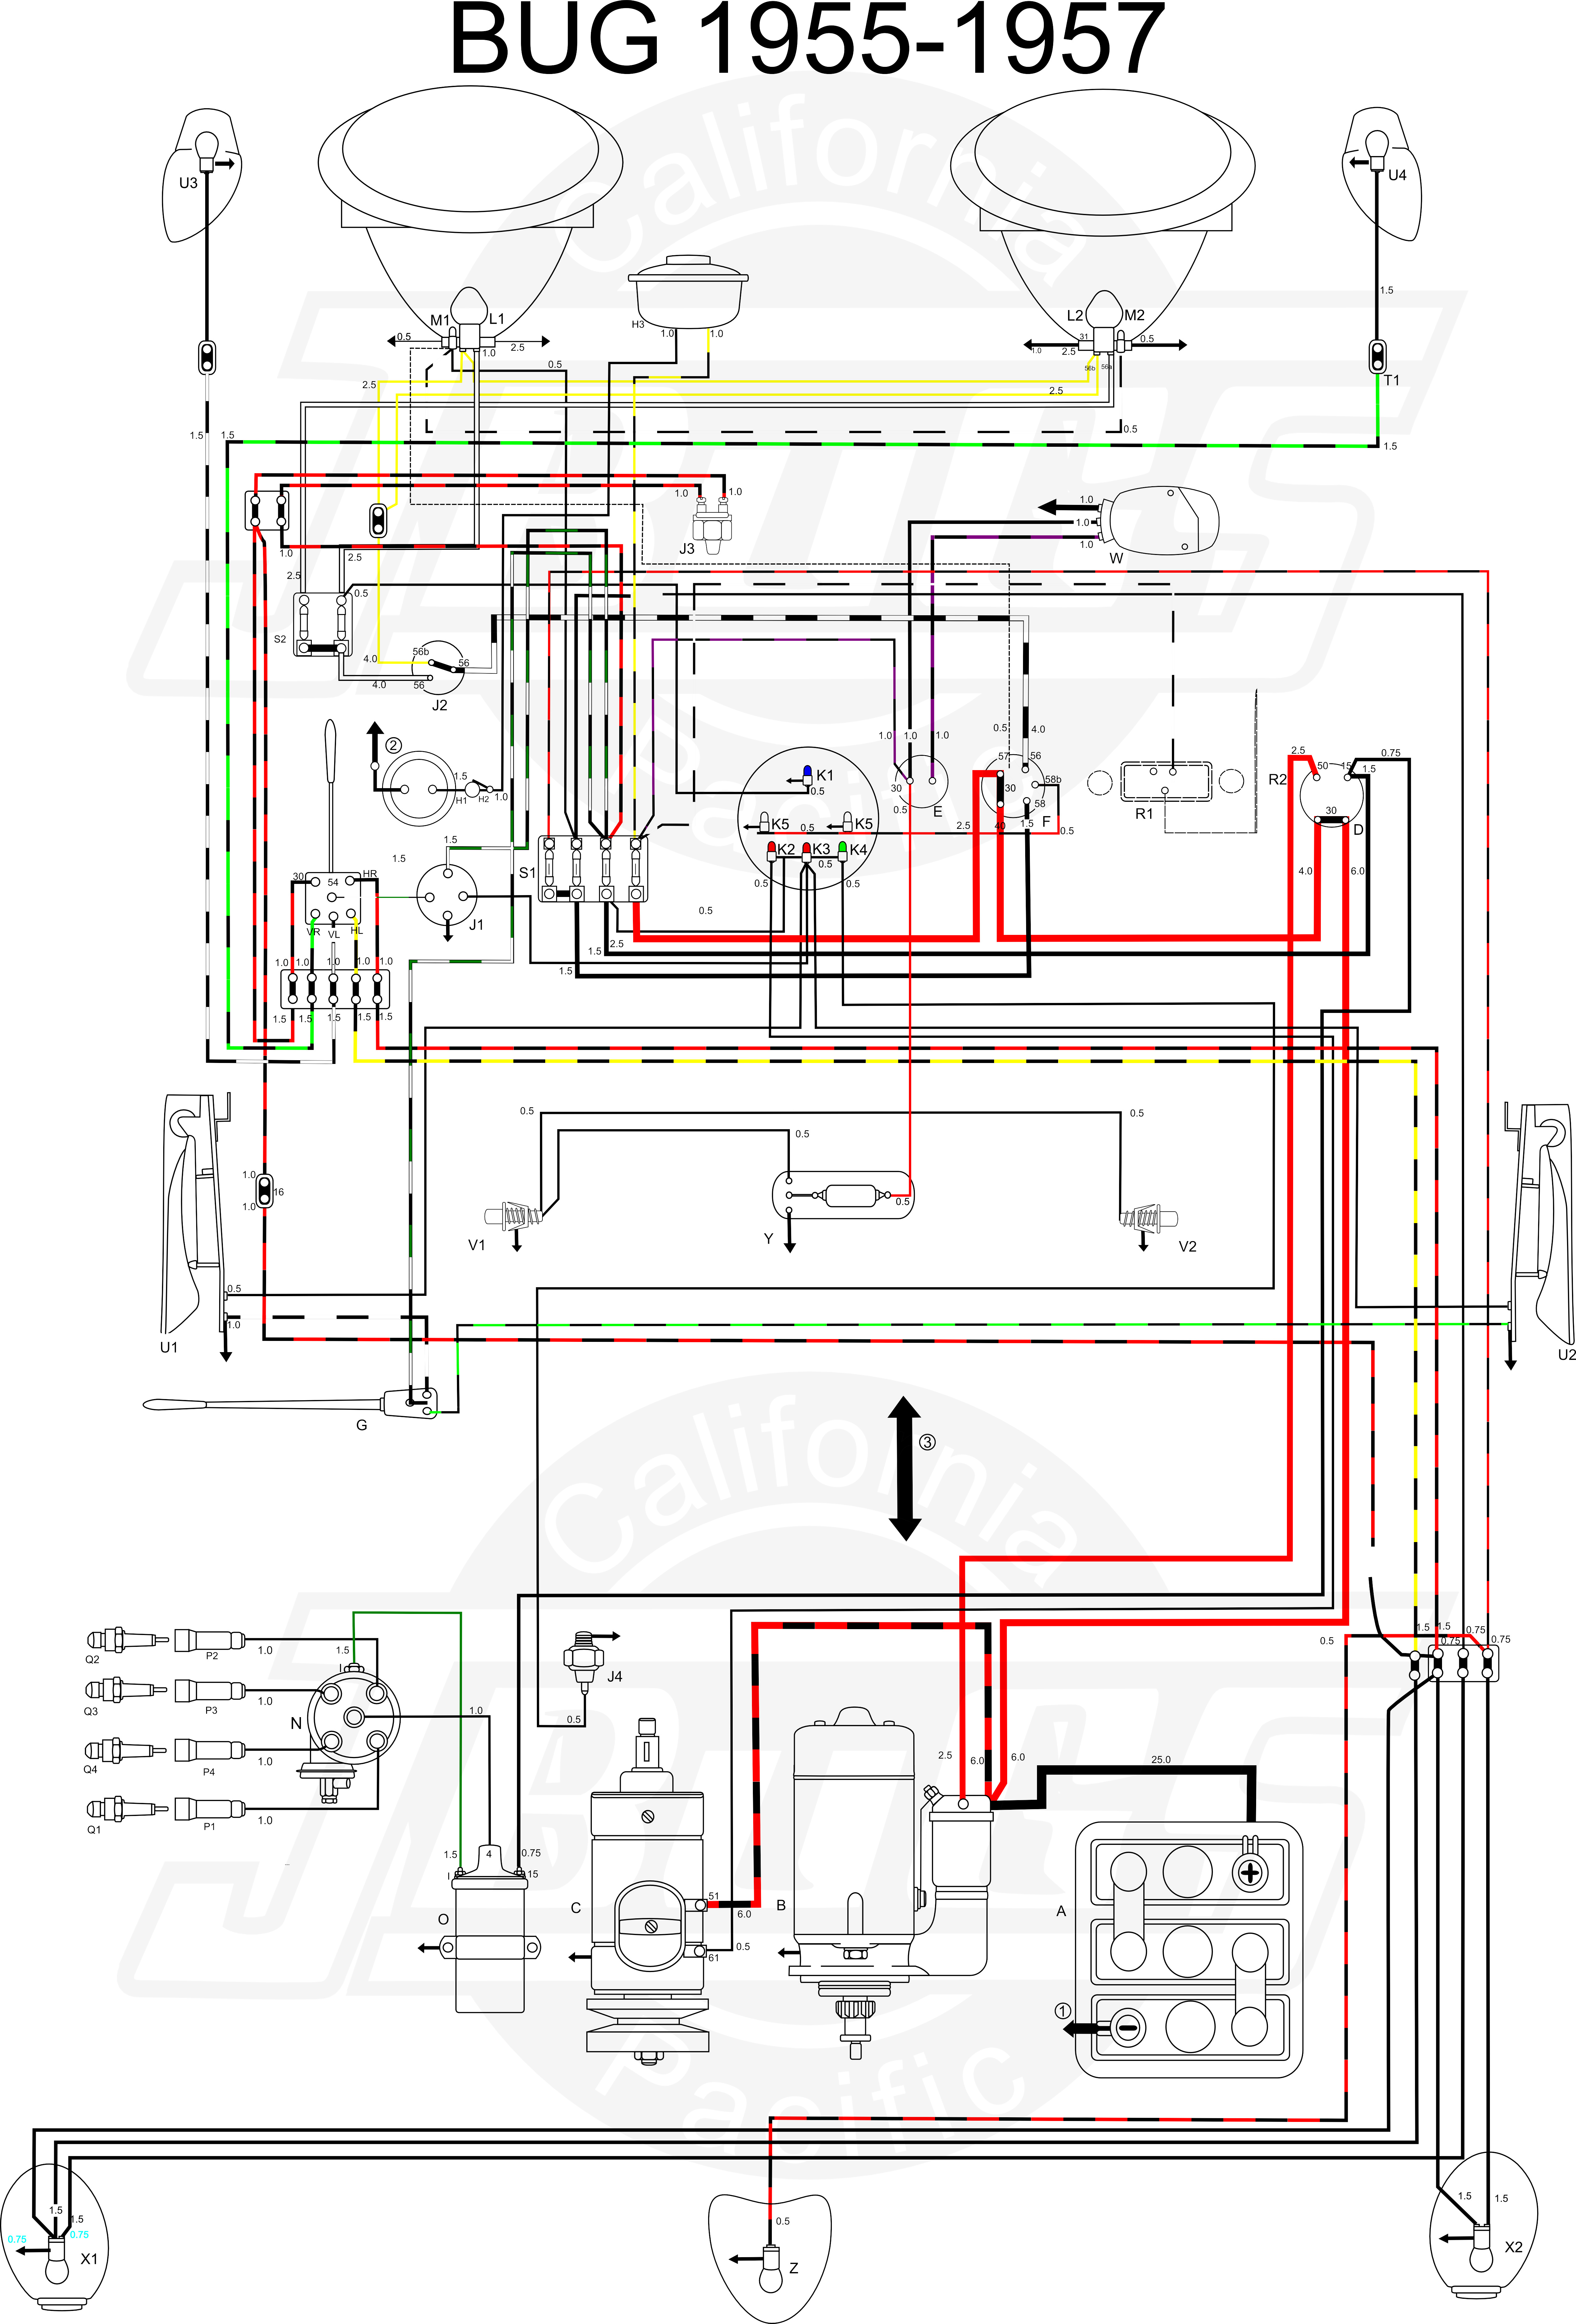 VW Bug 1955 57 Wiring Diagram jbug wiring harness 1970 vw beetle wiring harness \u2022 wiring vw bug painless wiring harness at mifinder.co